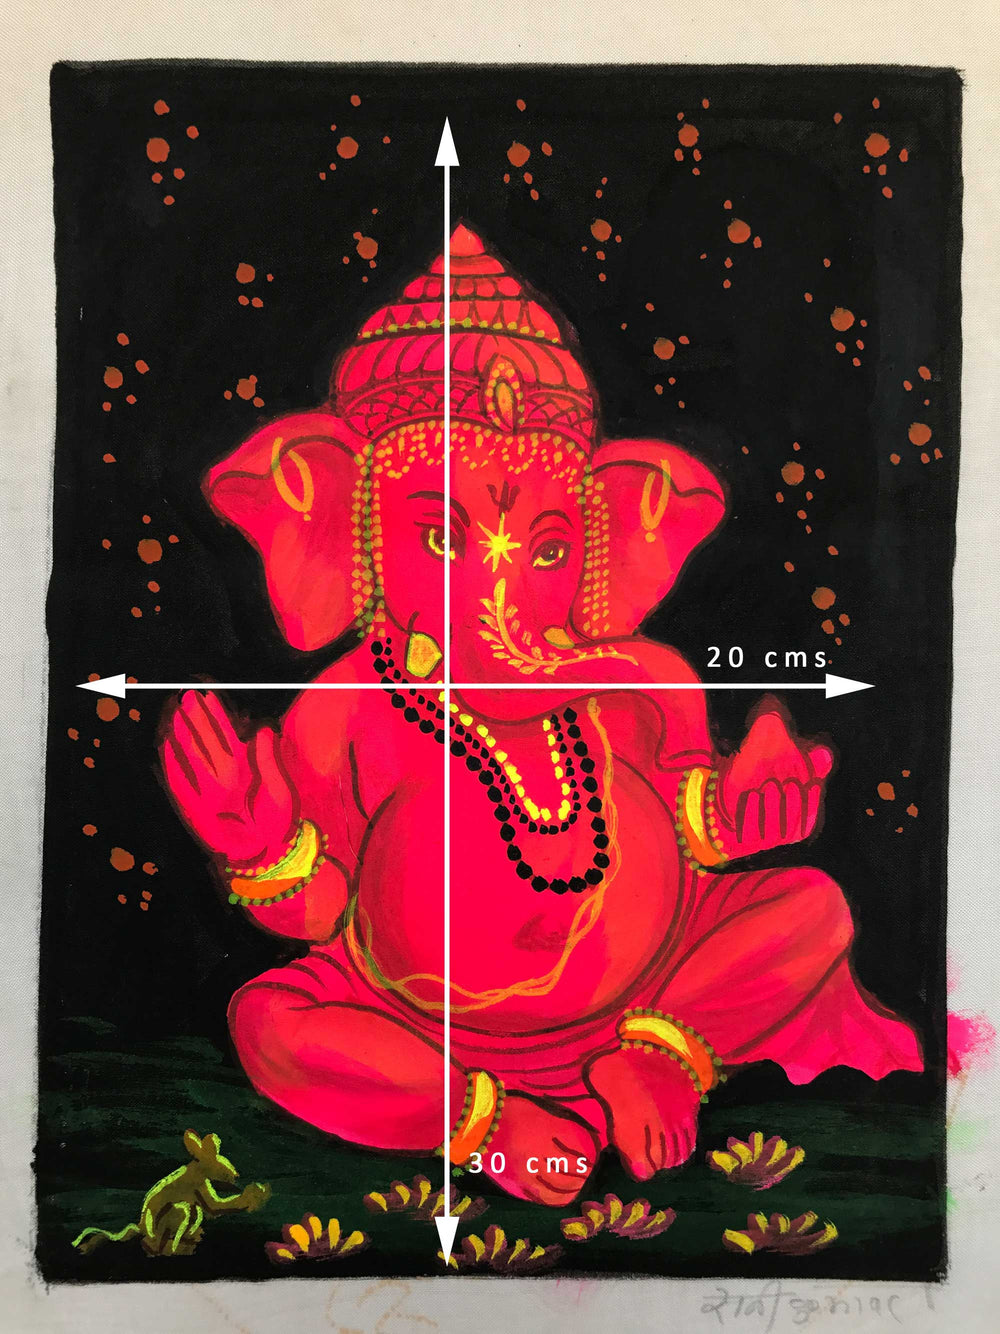 UV Glow Lord Ganesh Pink painting made from fluorescent colors